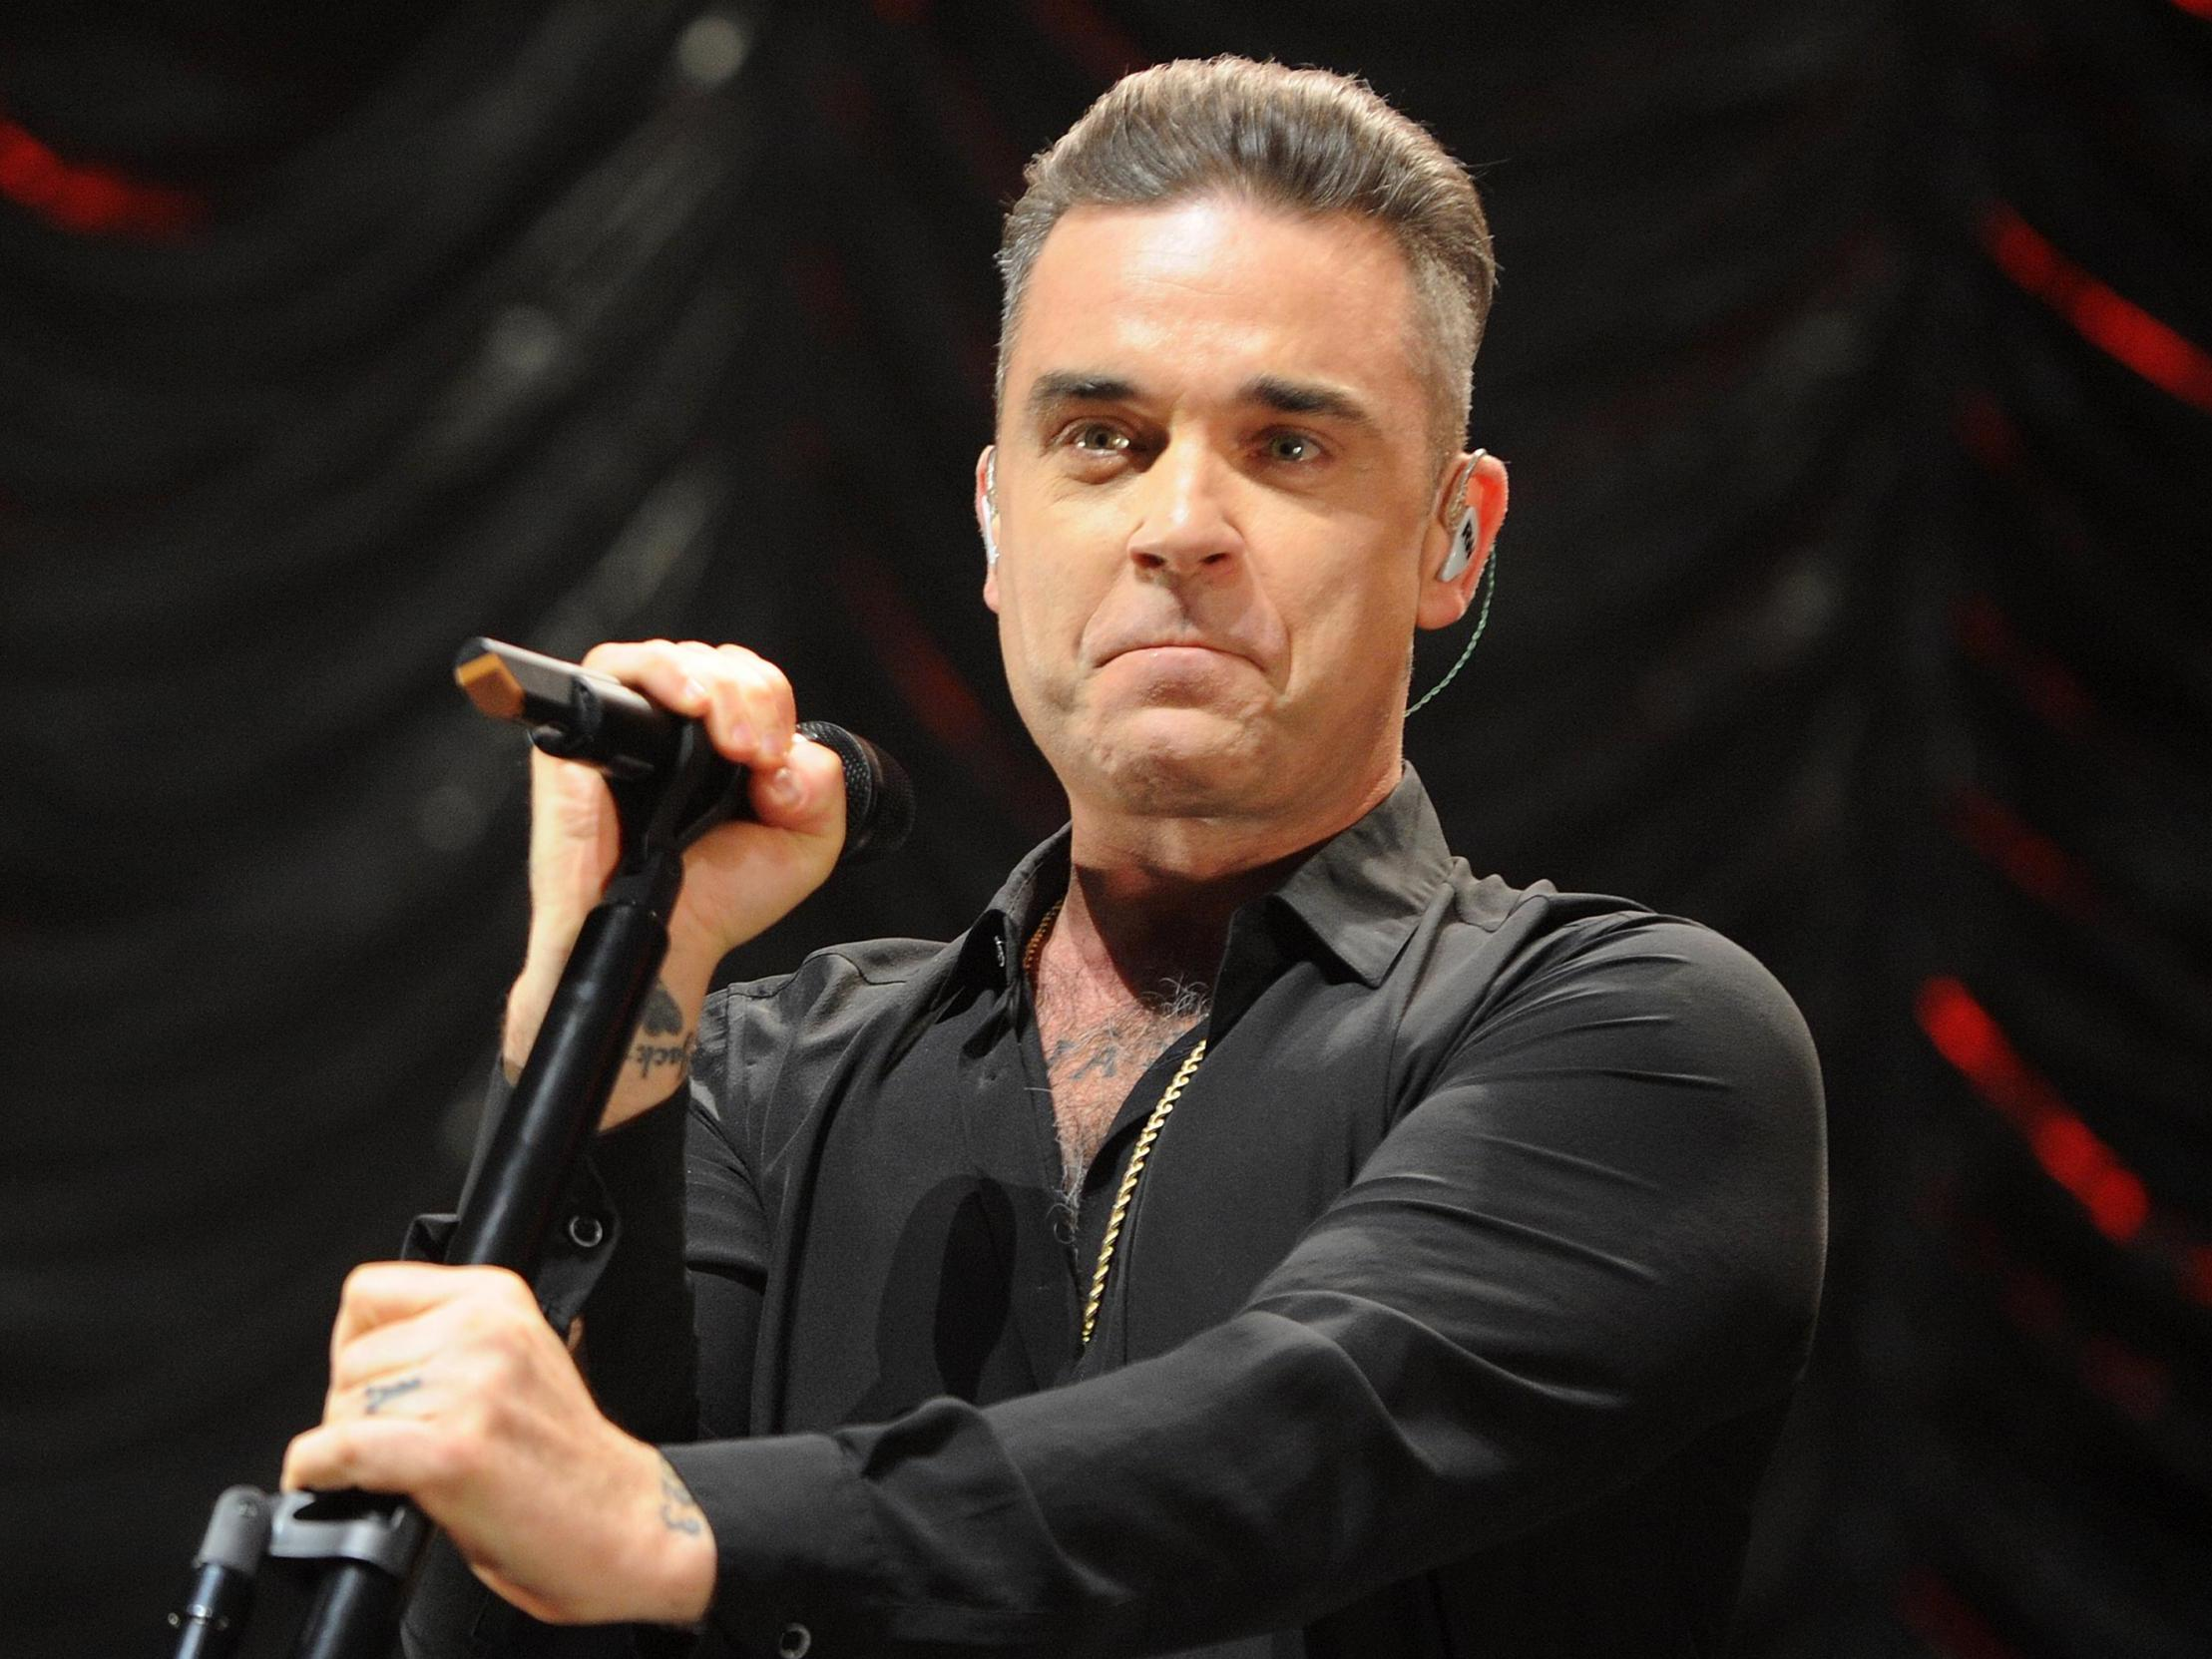 Robbie Williams reveals his father has Parkinson's disease